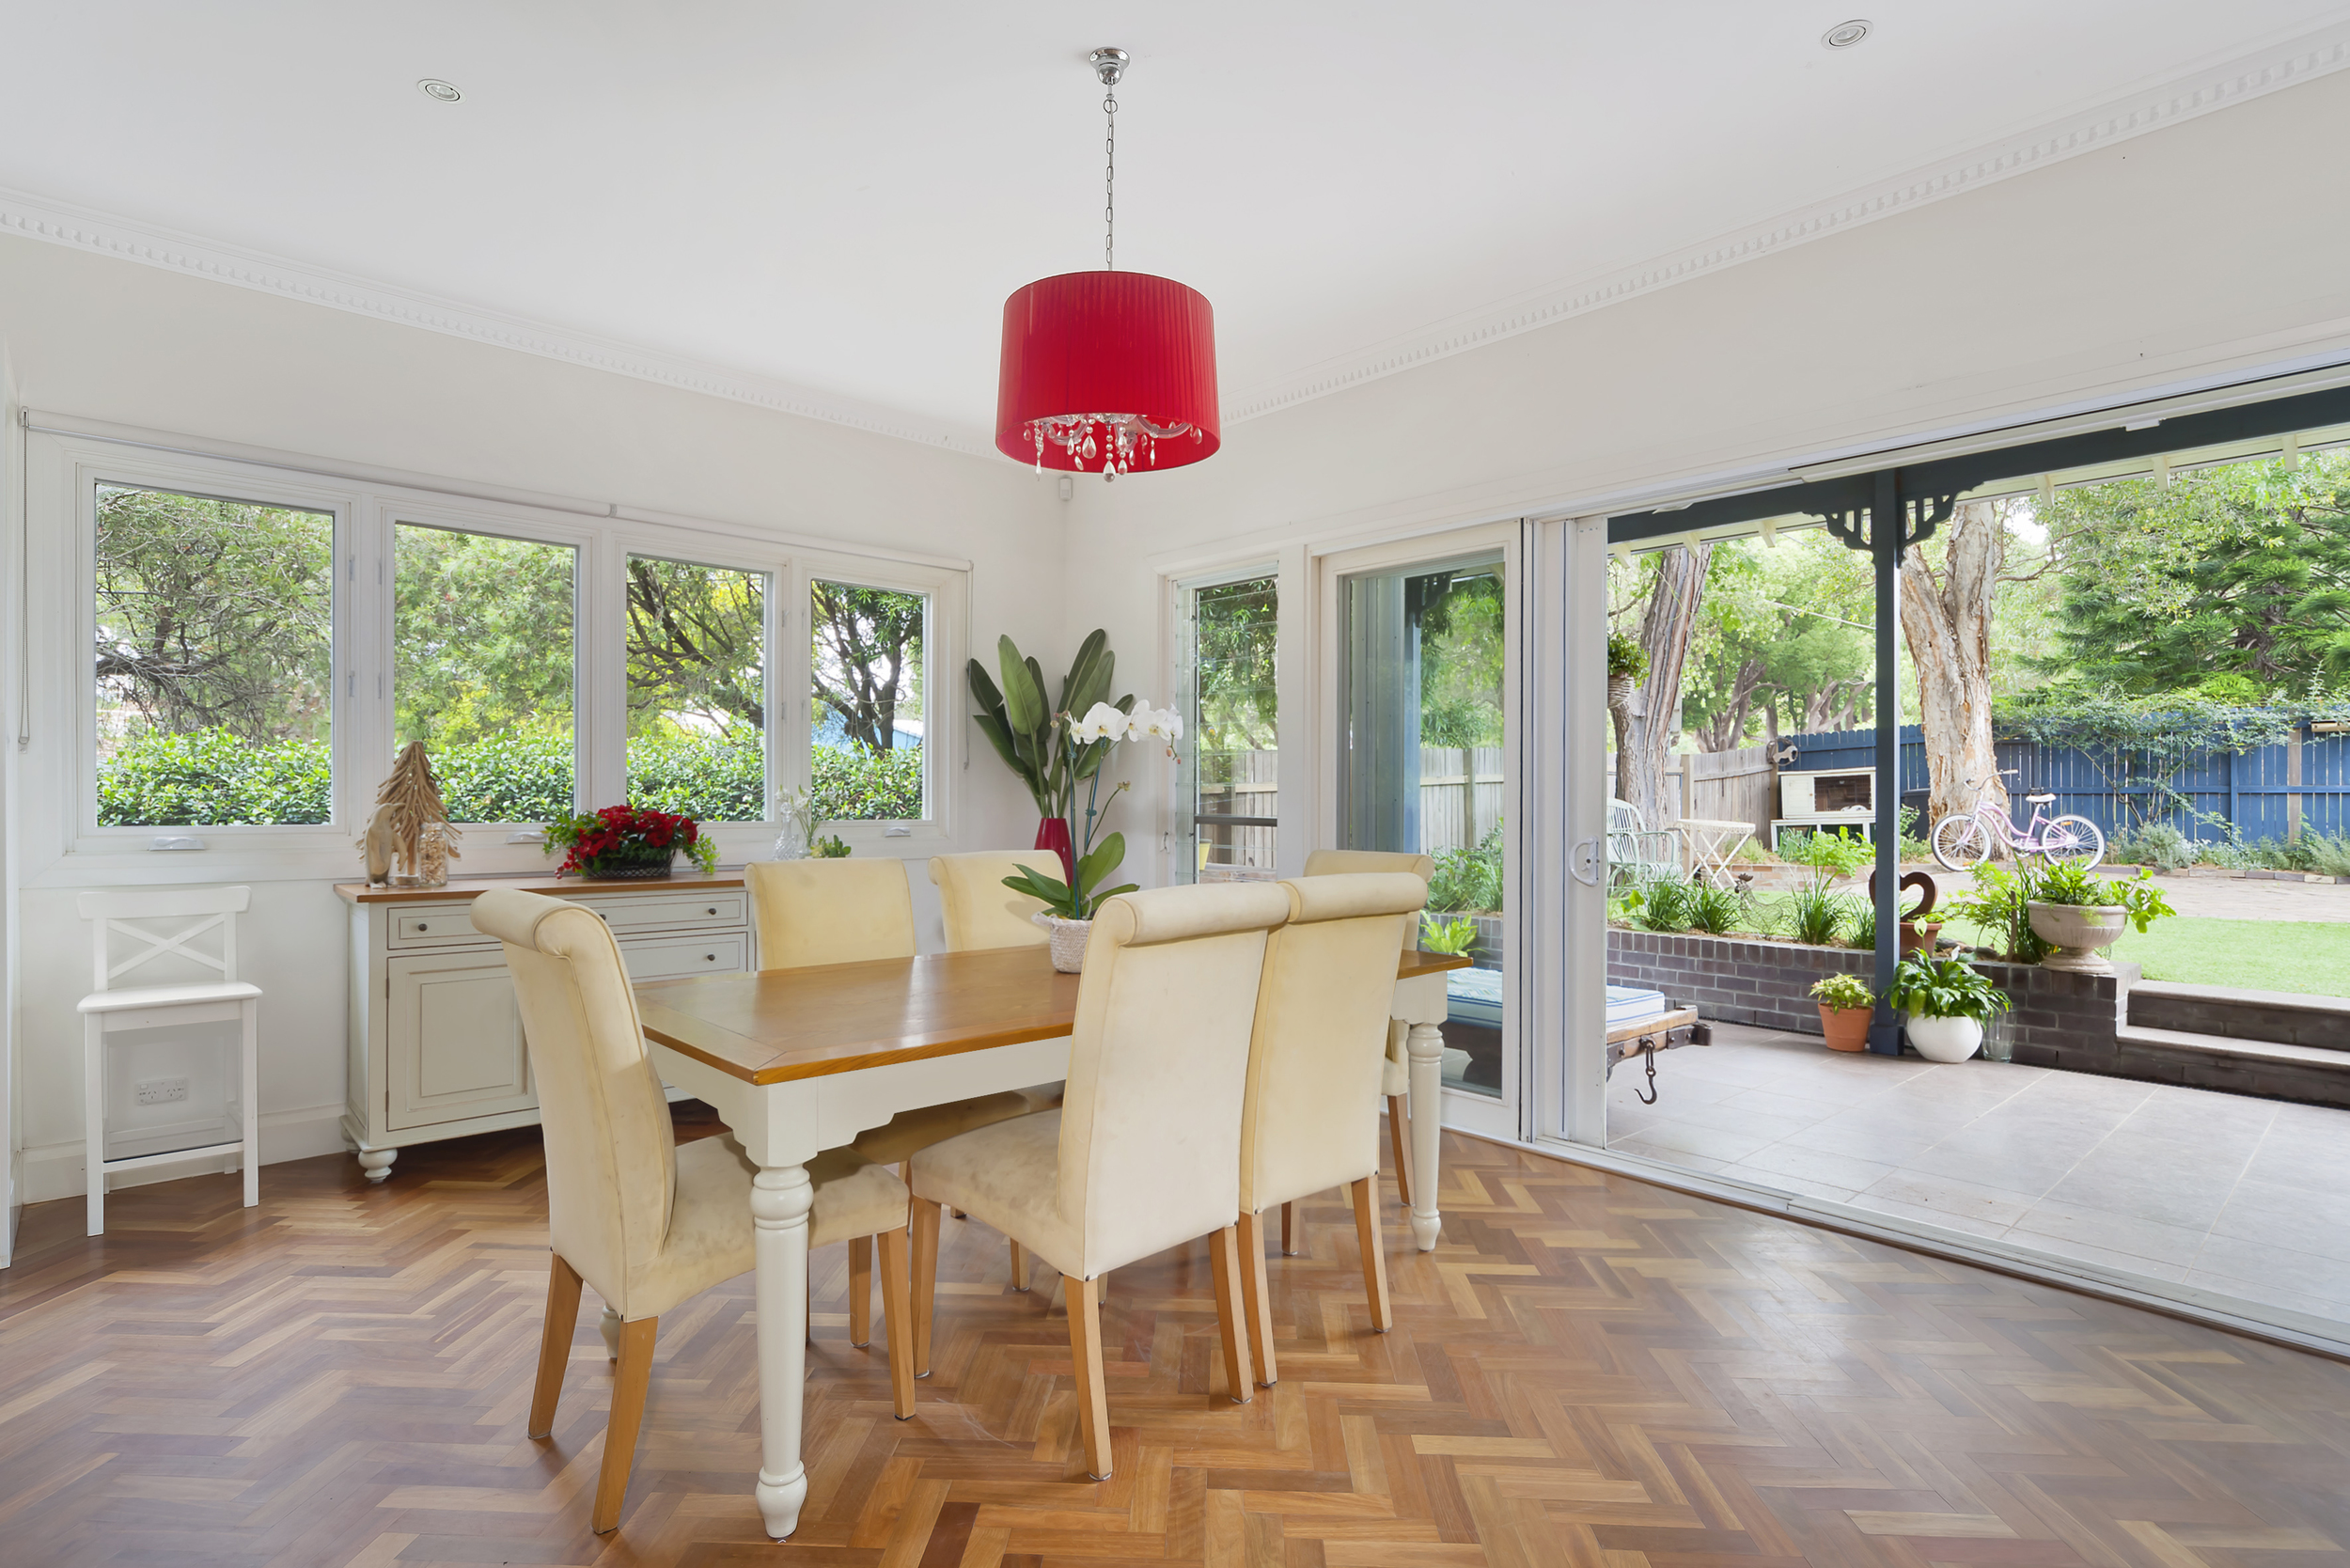 Dining with Parquetry Floor.jpg